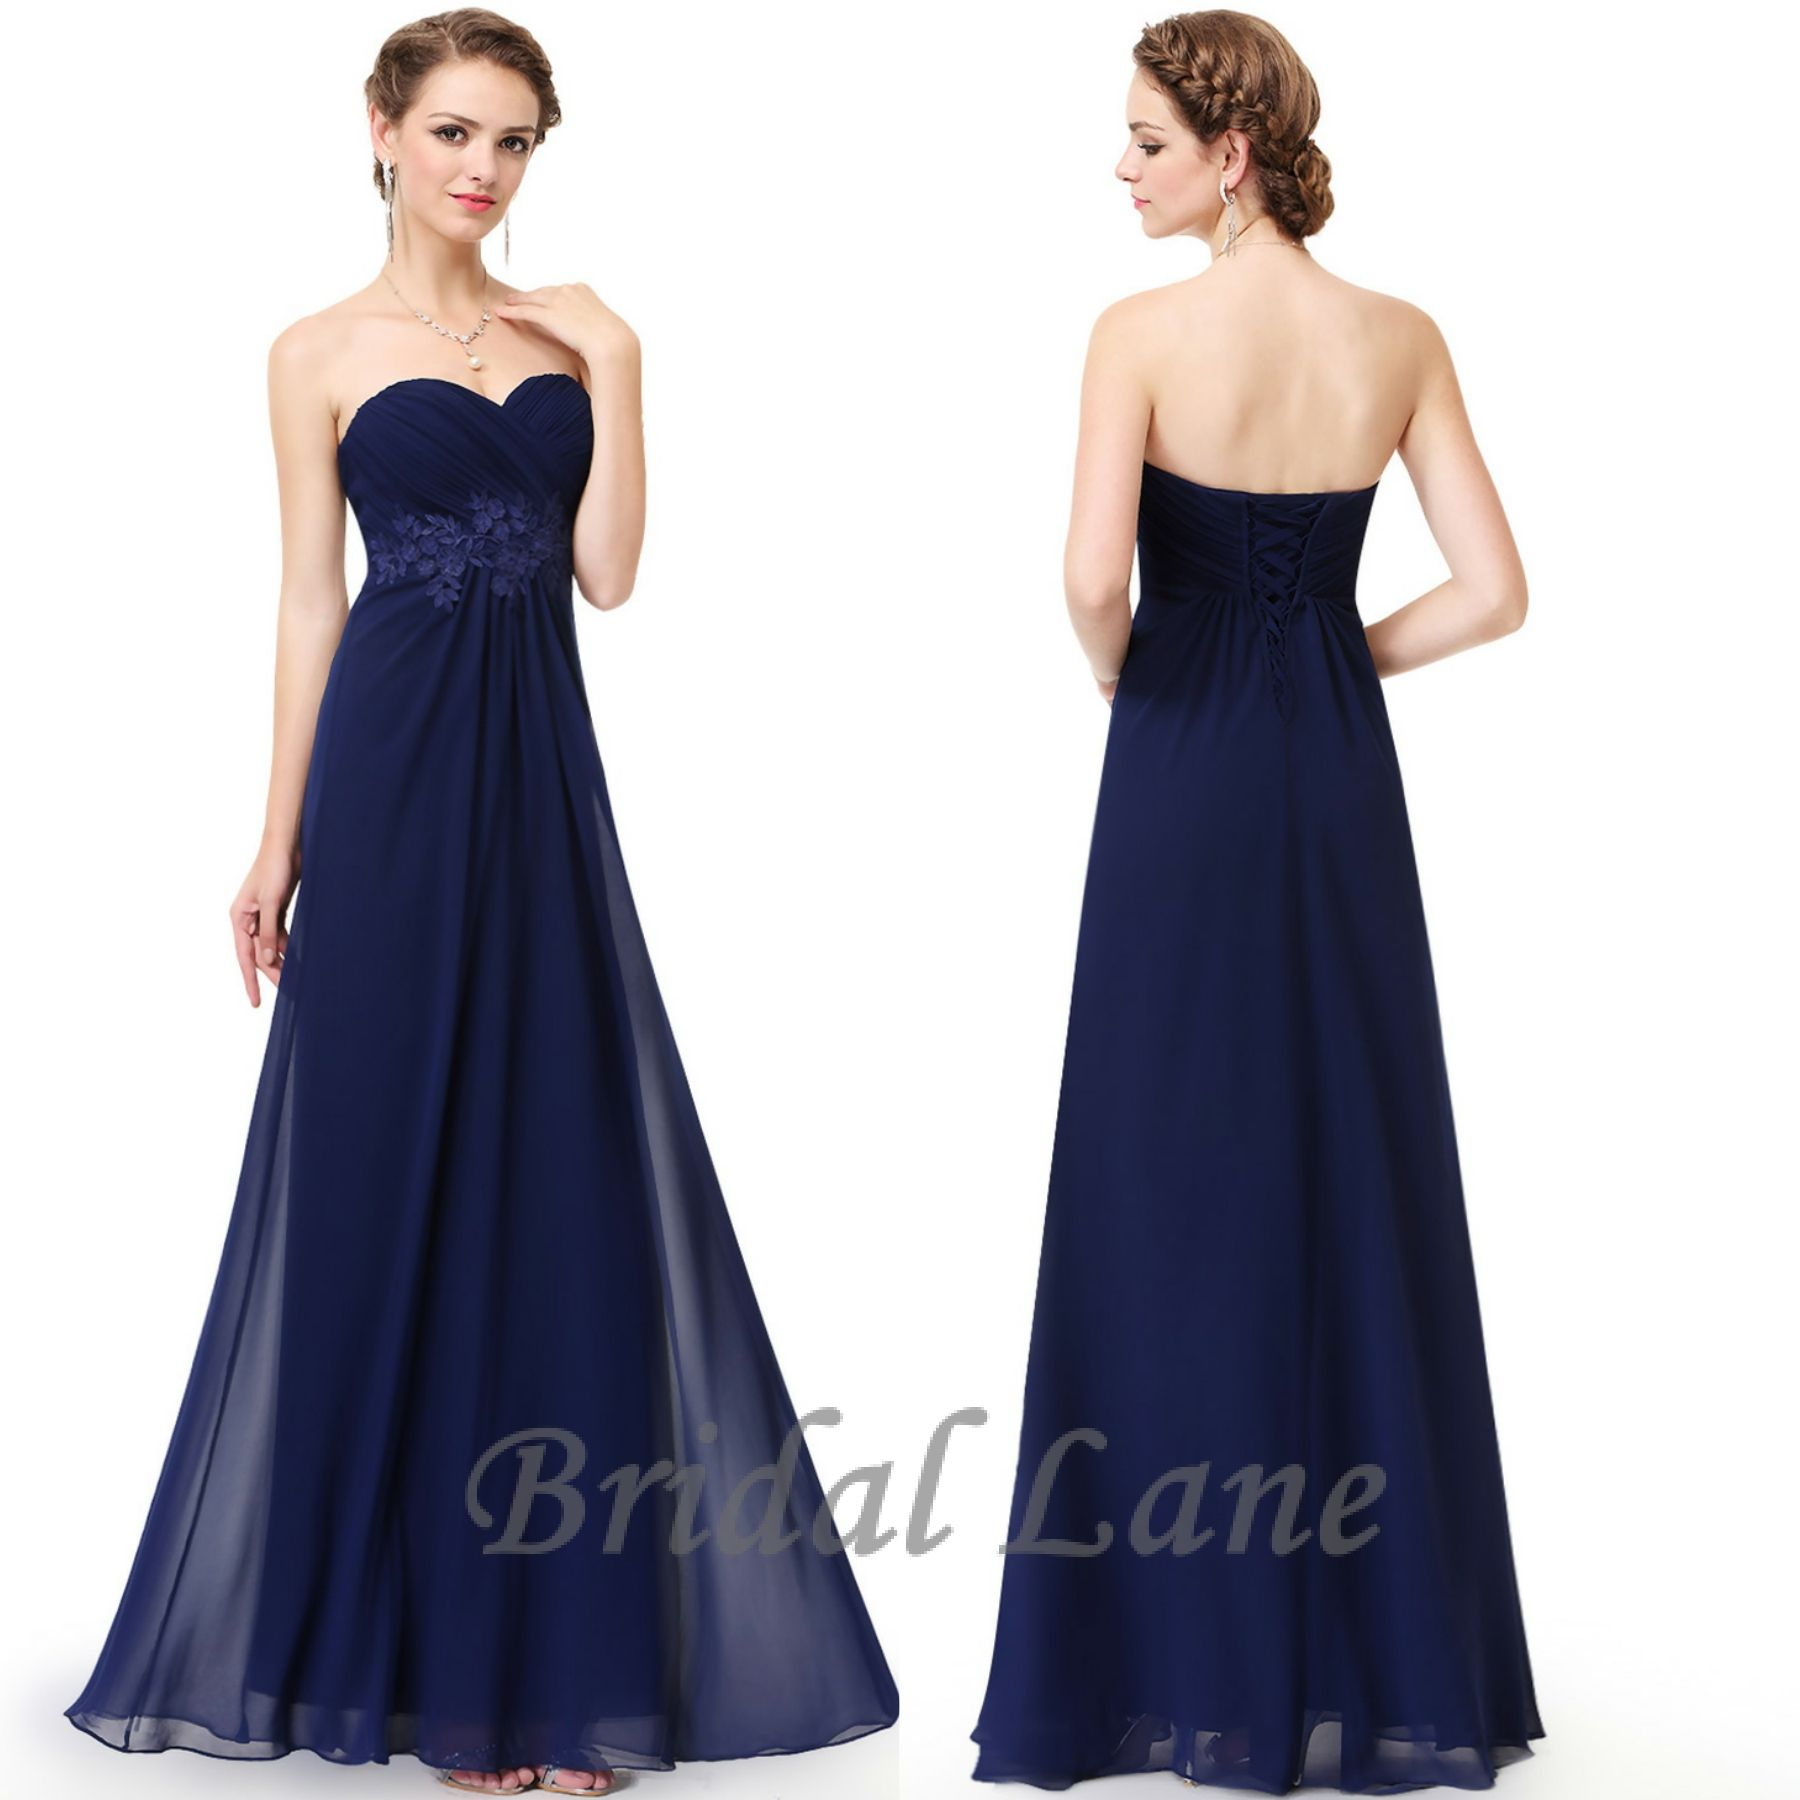 Matric dance dresses matric farewell dresses evening dresses pictures - Strapless Navy Blue Evening Dresses With Lace Up Back Detail For Matric Ball Matric Farewell